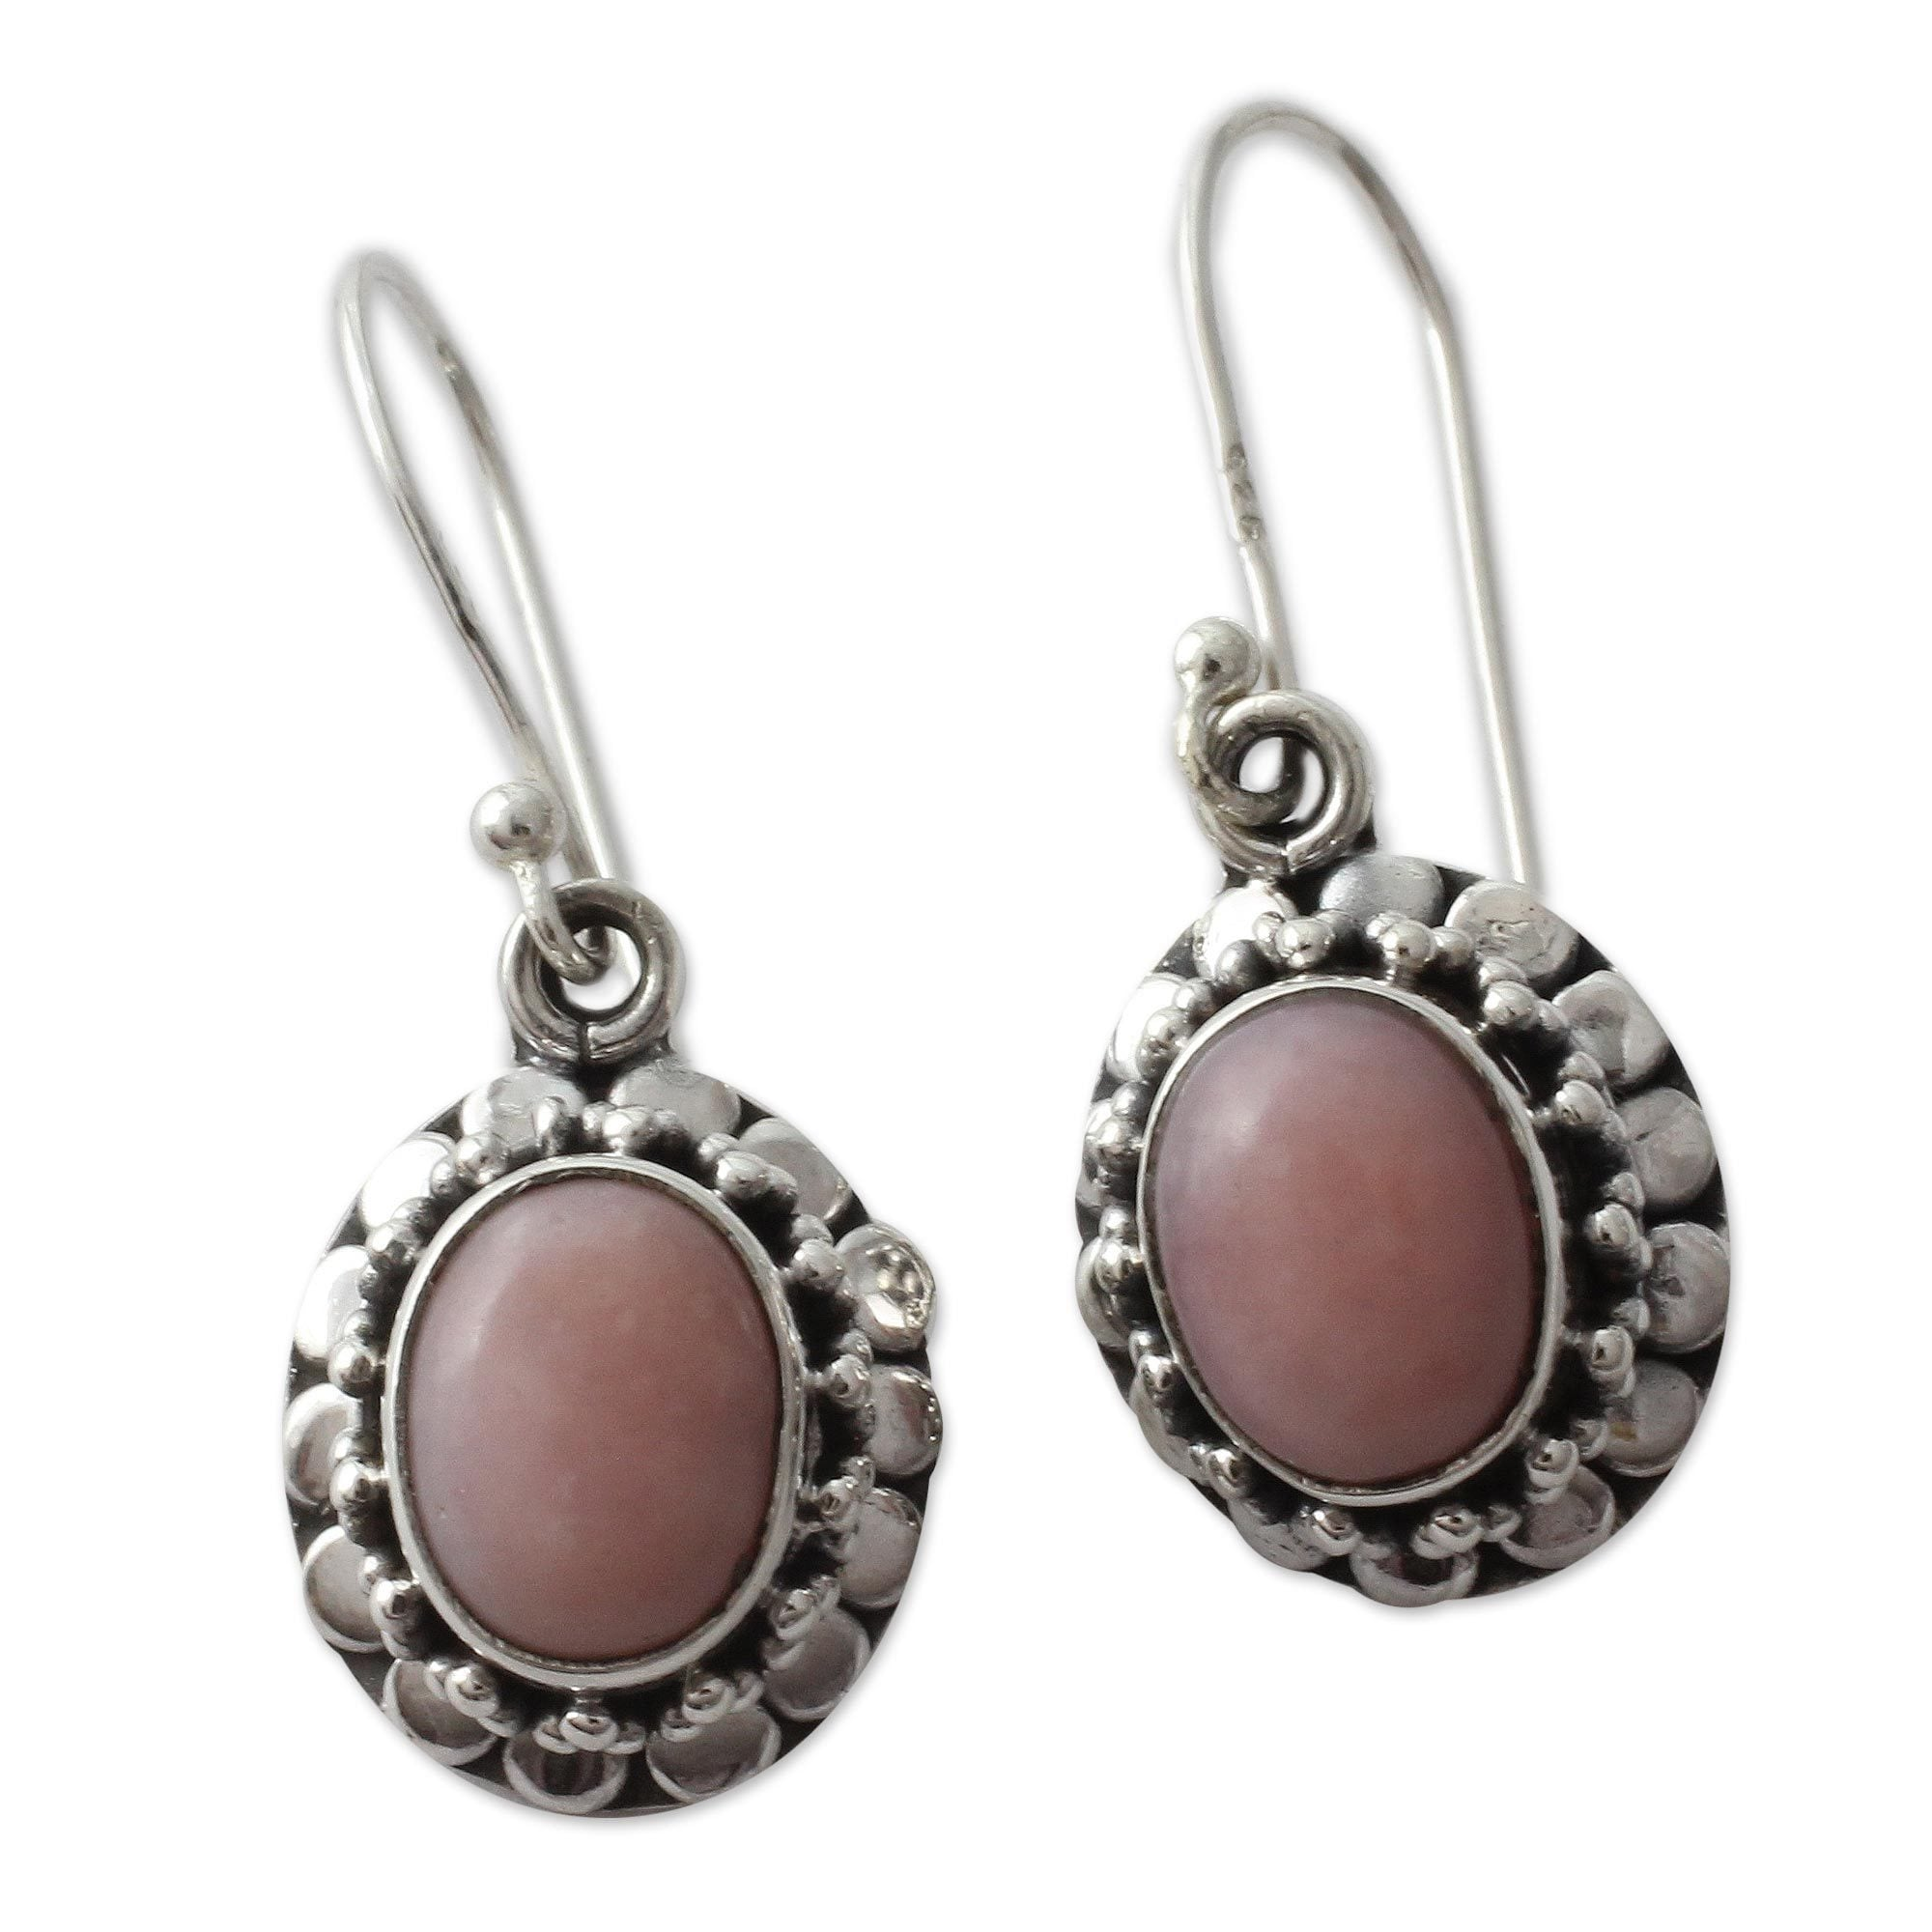 Handmade Sterling Silver Peace Pink Opal Earrings India On Free Shipping Orders Over 45 11895495